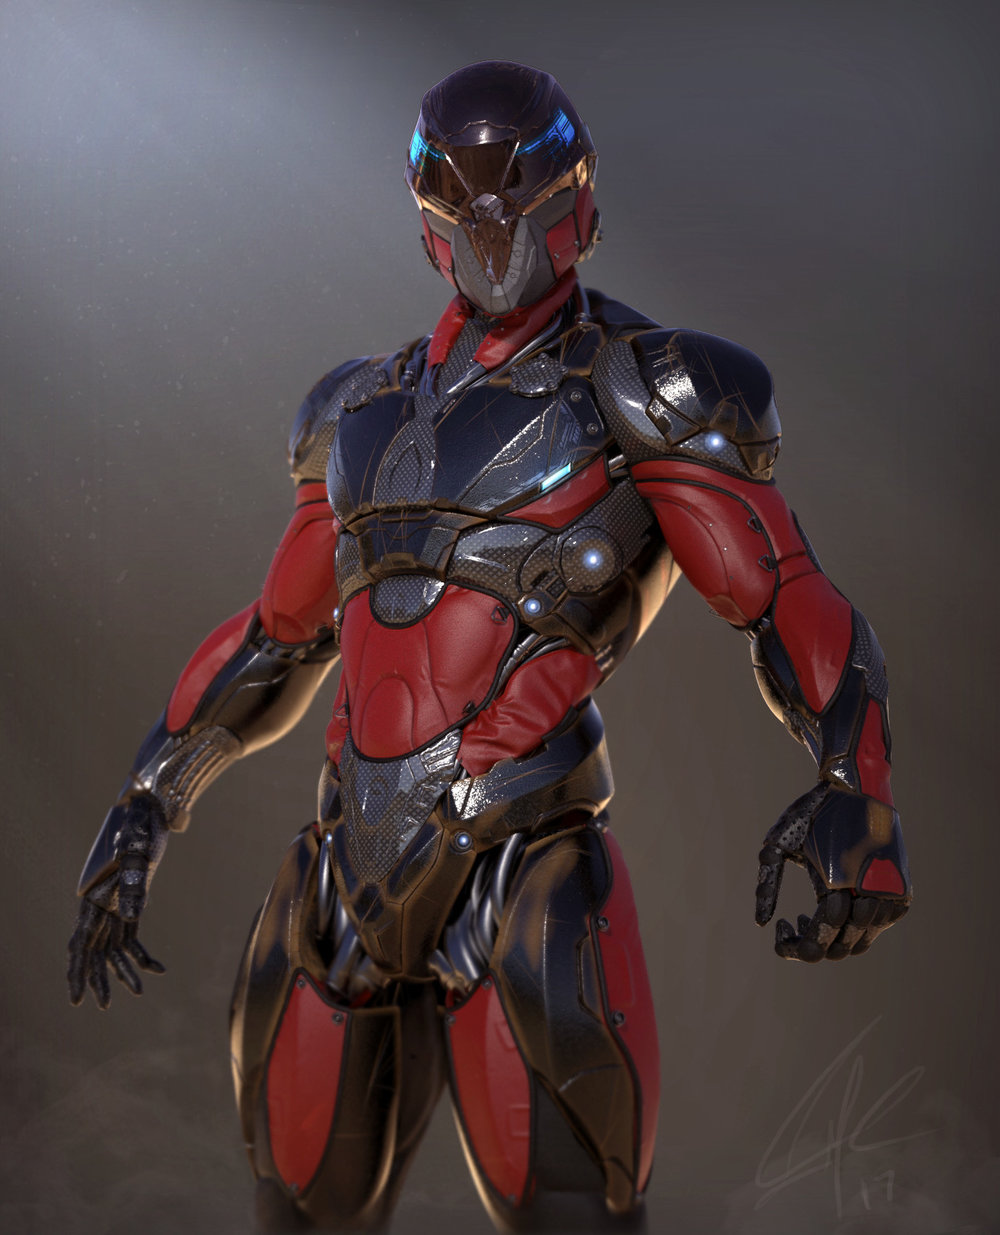 joey-morel-carrier-sci-fi-armor.jpg